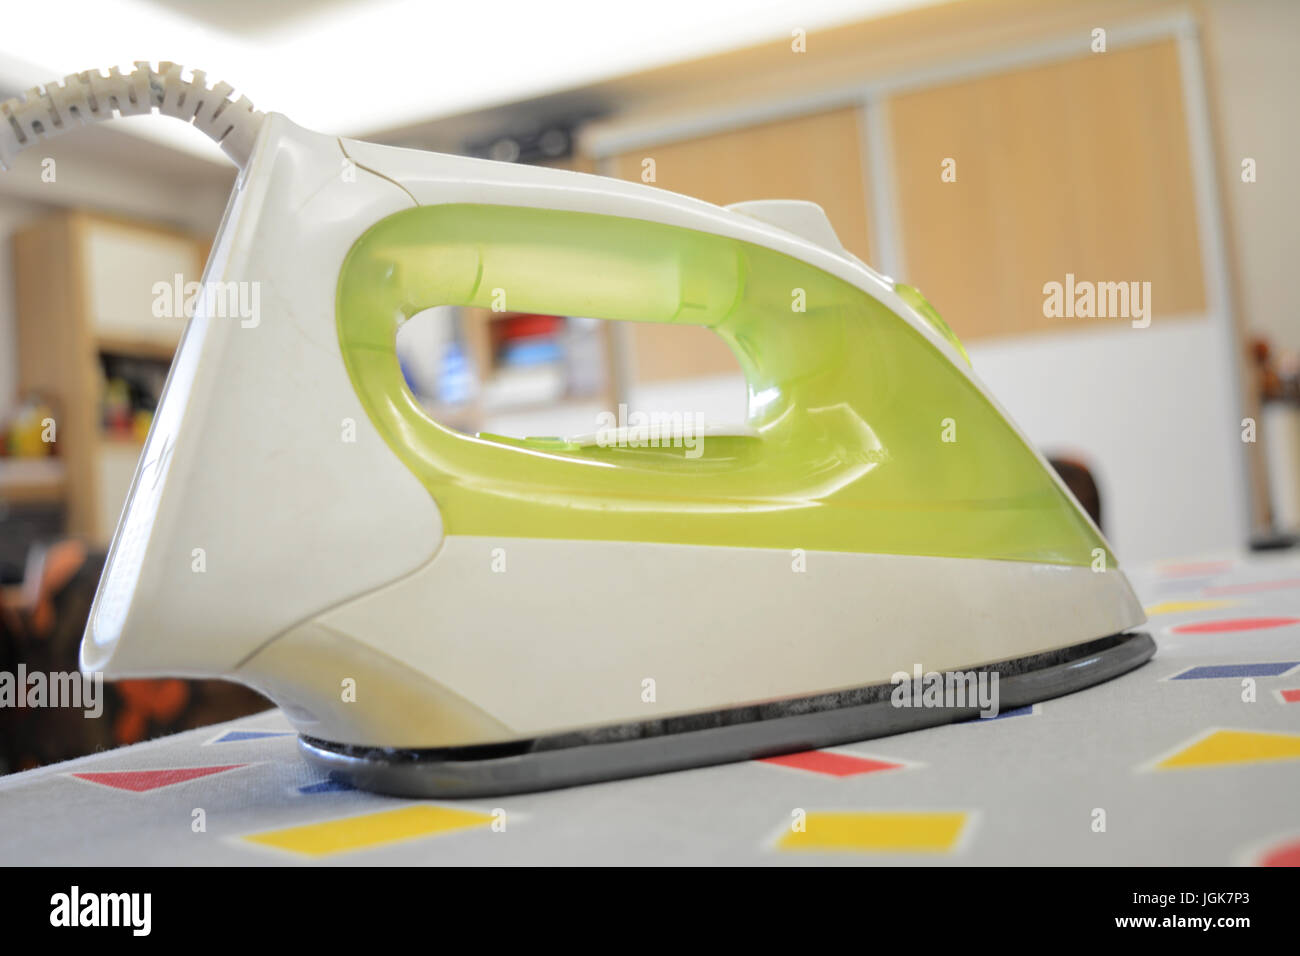 a sad iron isolated on a ironing table - Stock Image